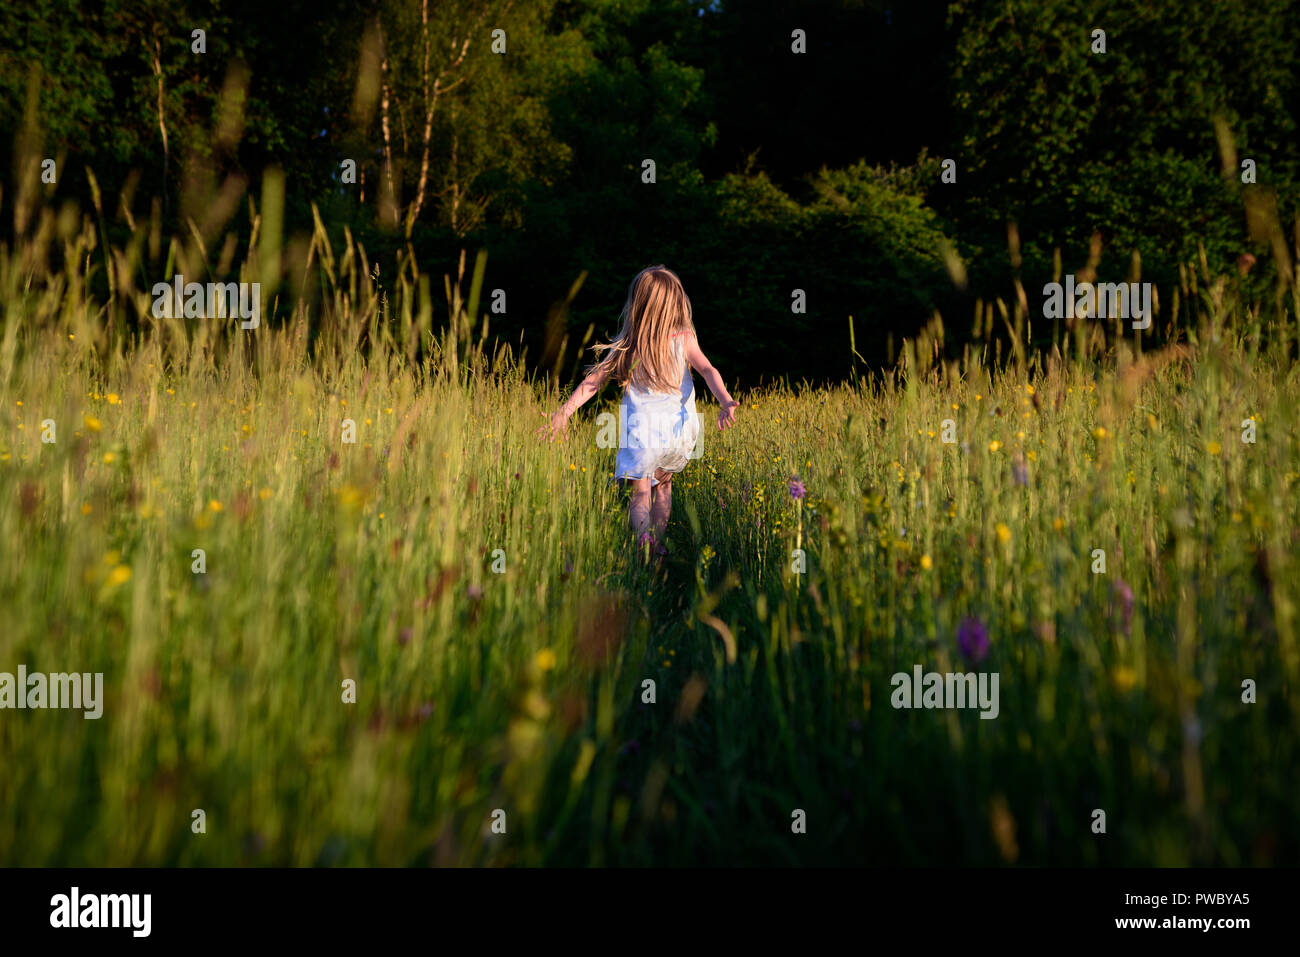 Young girl running away, through wild flower meadow, towards woodland. - Stock Image